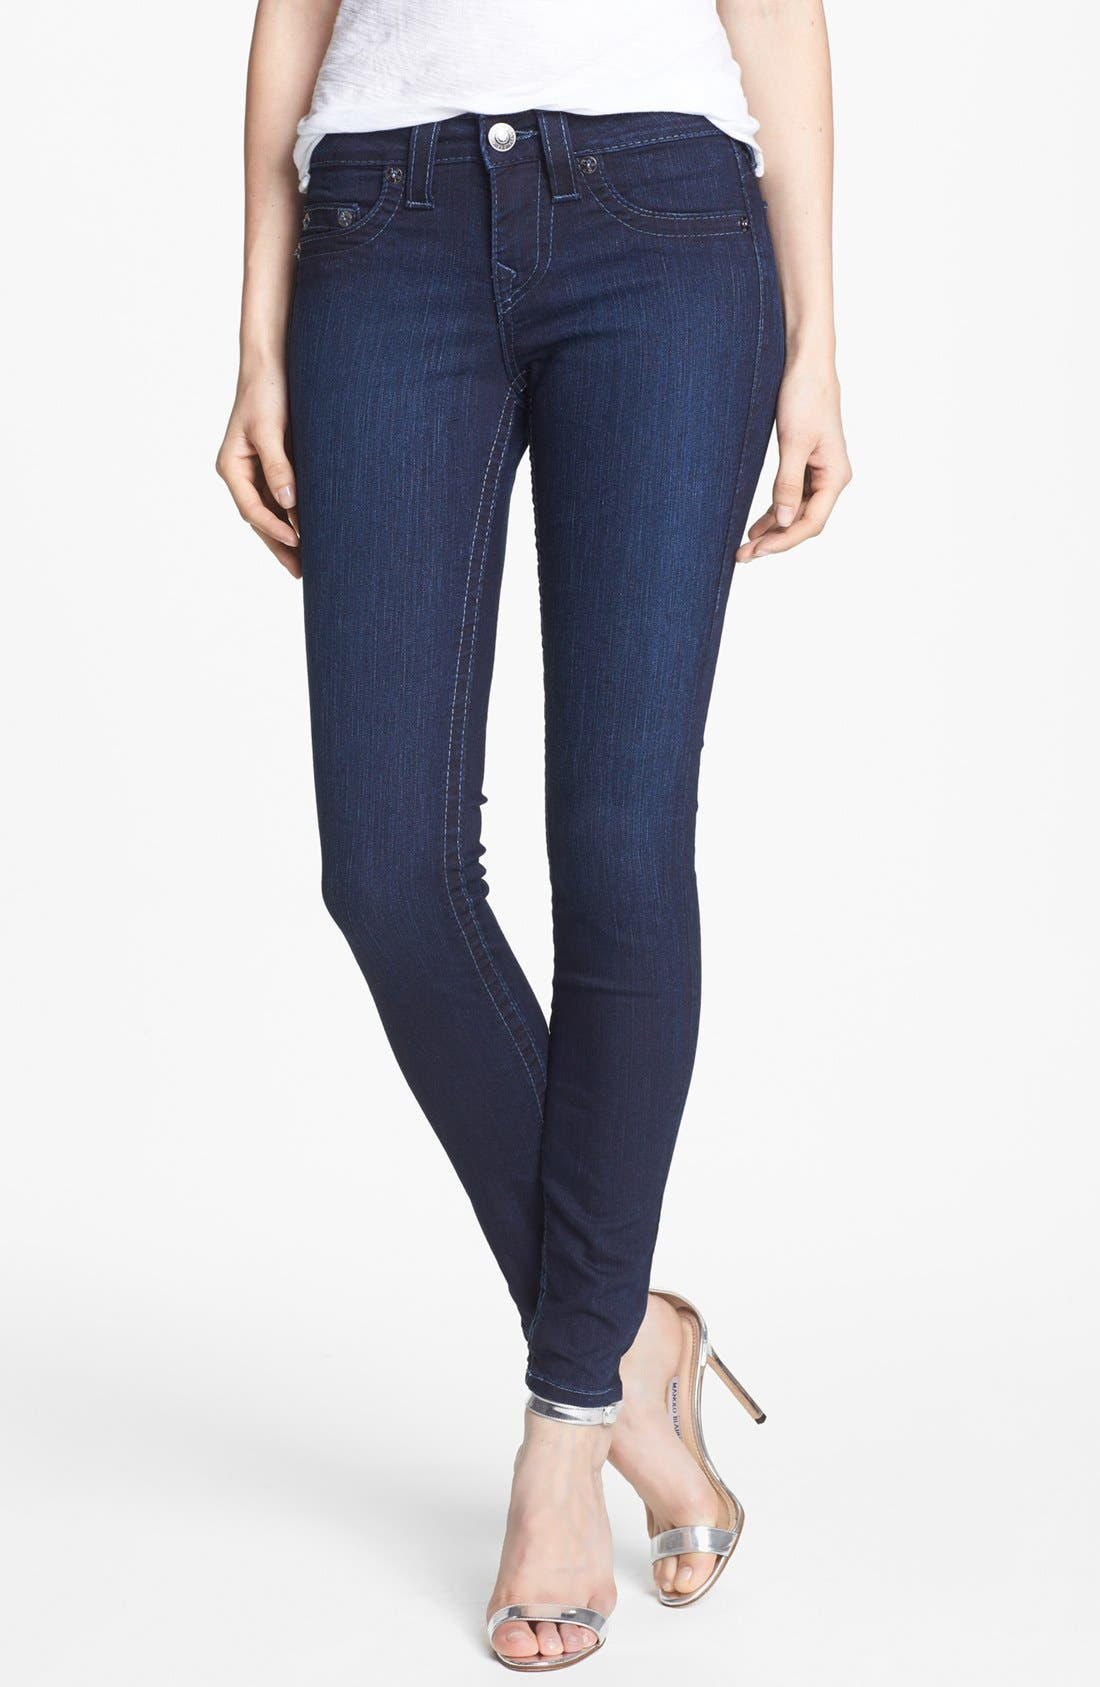 Main Image - True Religion Brand Jeans 'Halle' Mid Rise Skinny Jeans (Starlight)